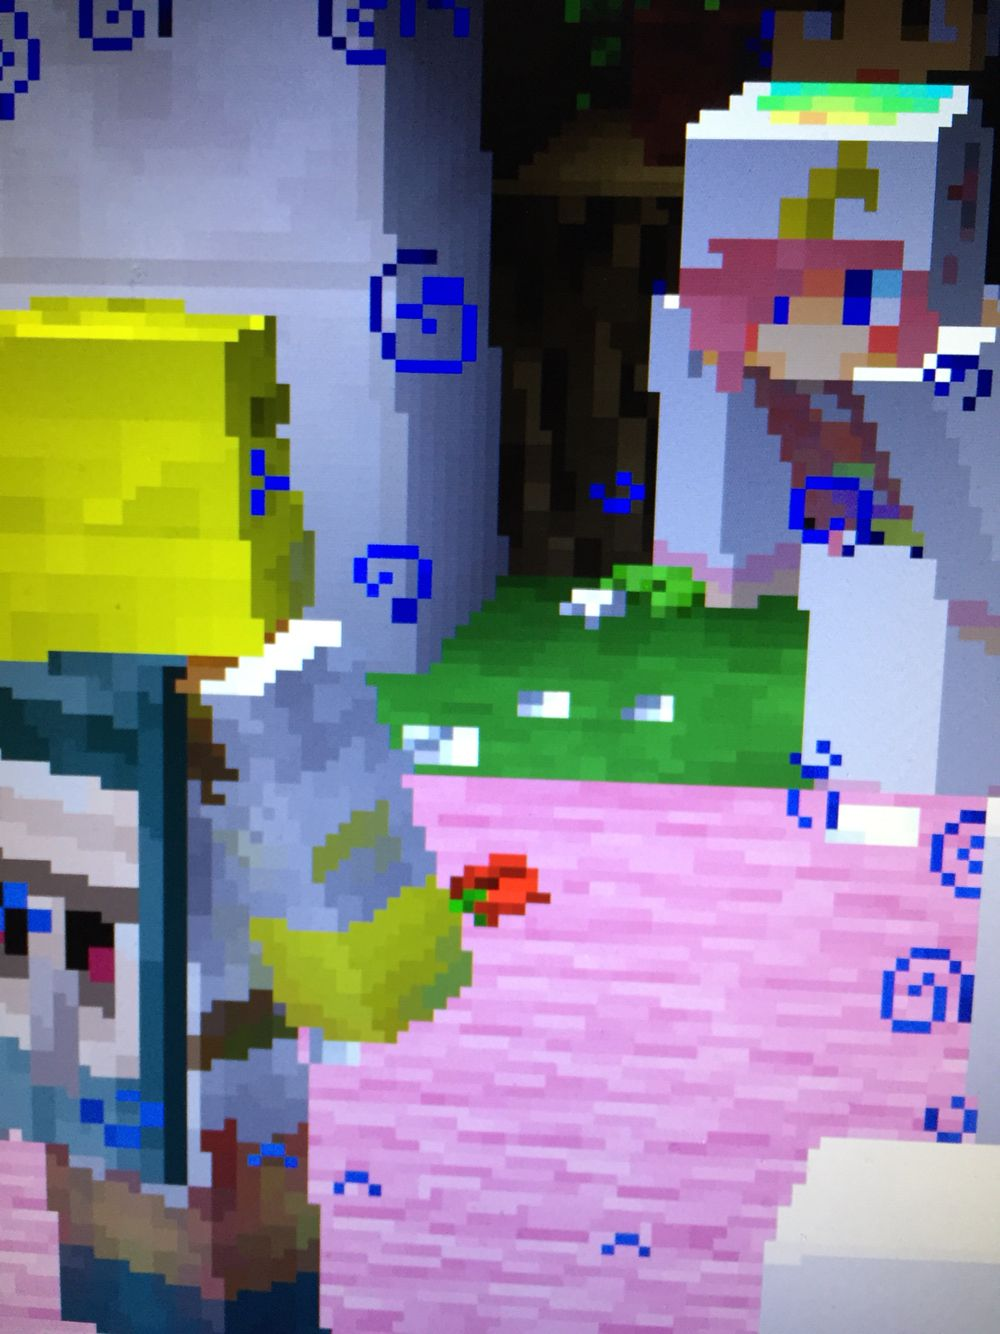 We Got To See Smallish Beans And Ldshadowlady More Pics On Our Insta Themcpost Minecraft Skin Ldshadowlady Beans